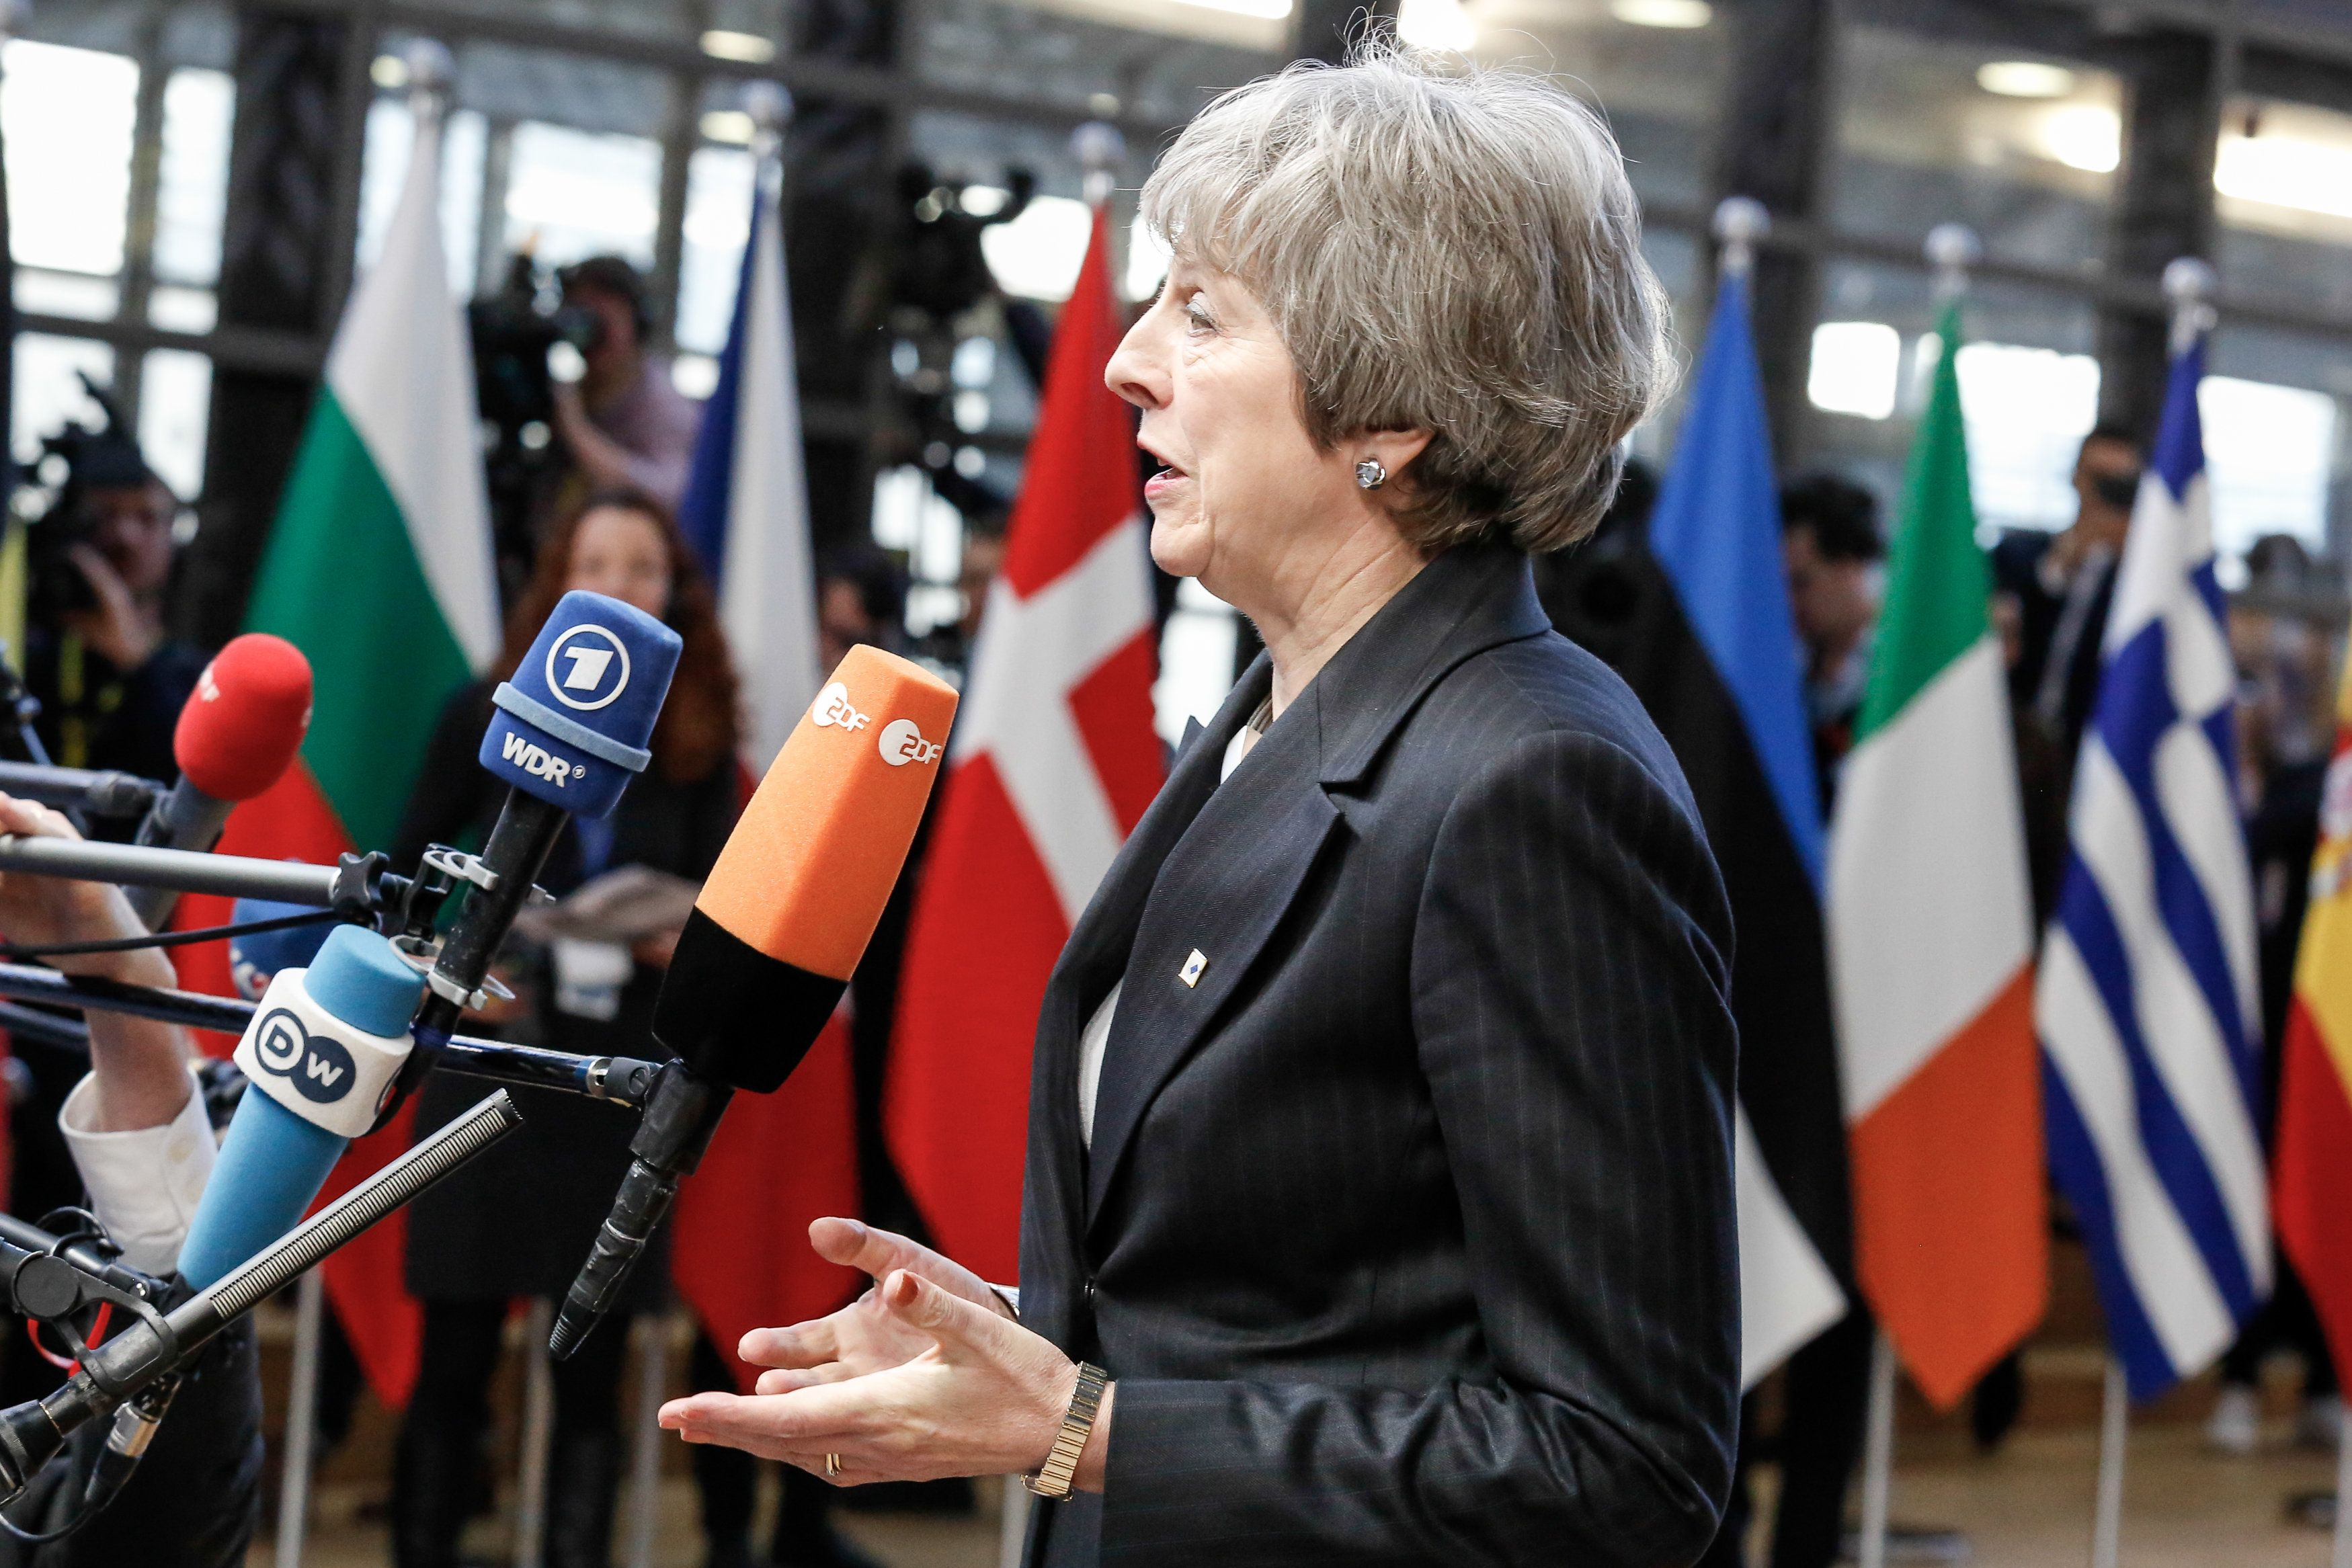 Theresa May vows to secure better Brexit deal